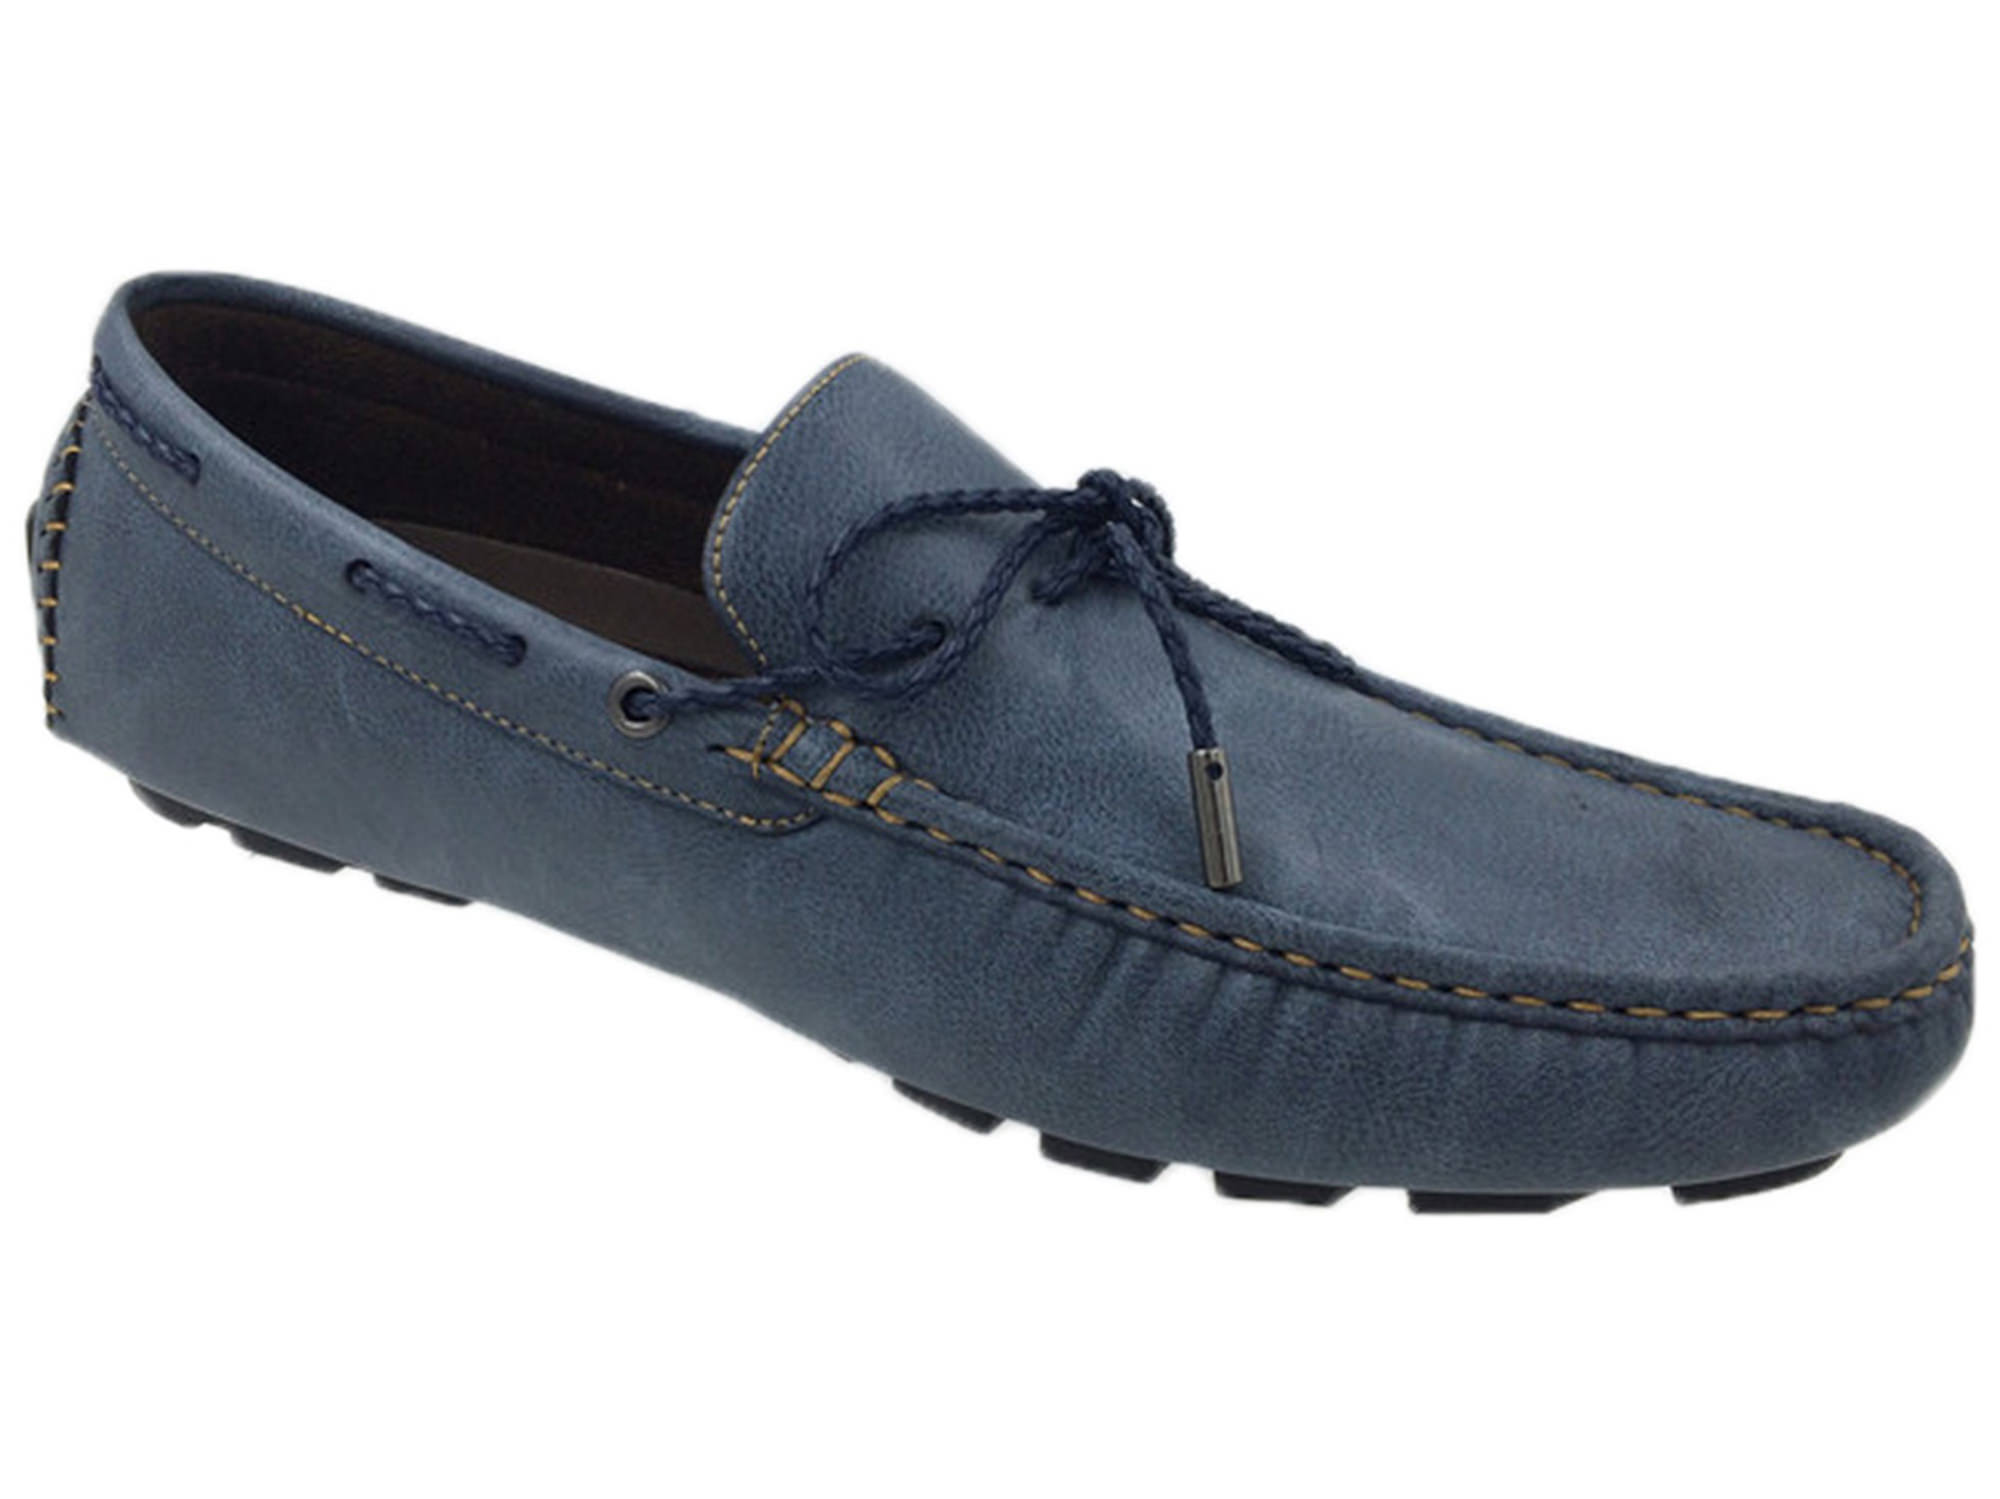 Mecca Tony Men's Lace Slip-On Loafers Shoes by Unity Brands Inc.